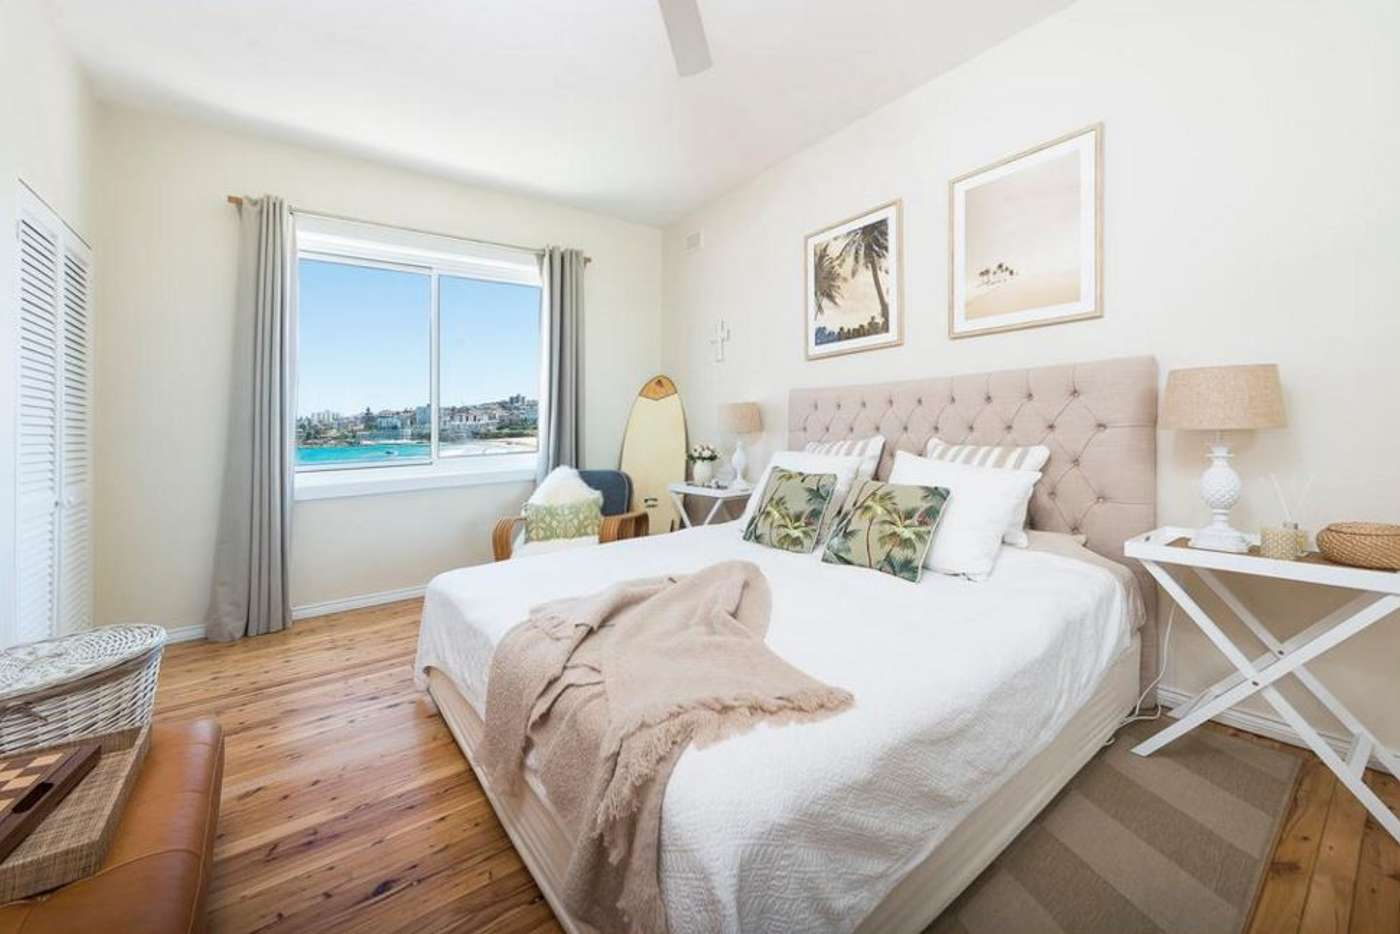 Main view of Homely apartment listing, 5/266 Campbell Parade, Bondi Beach NSW 2026